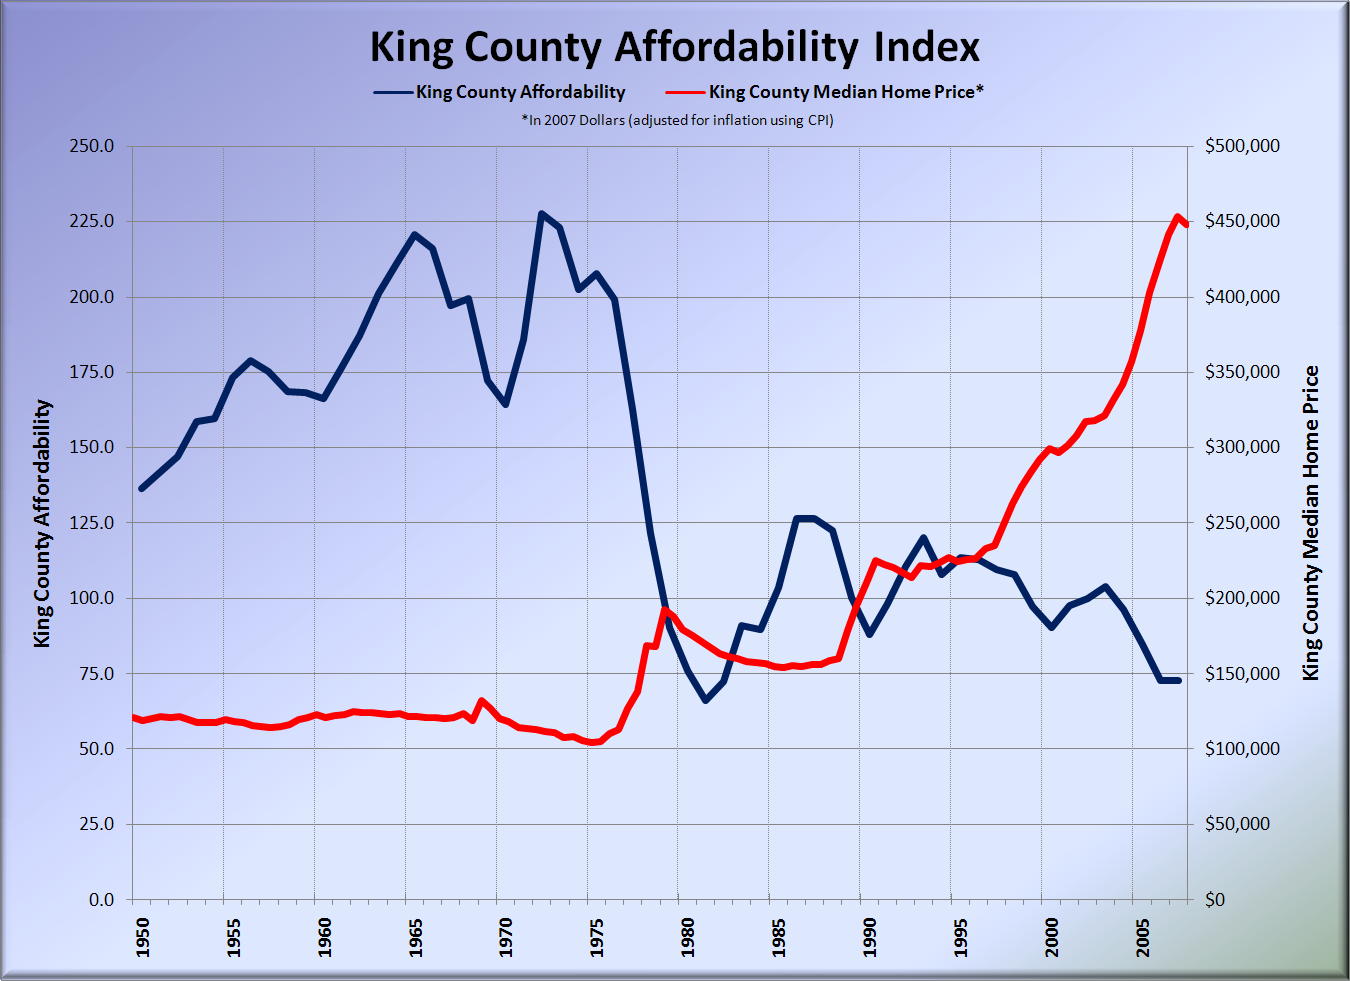 King County Affordability: 1950-2007